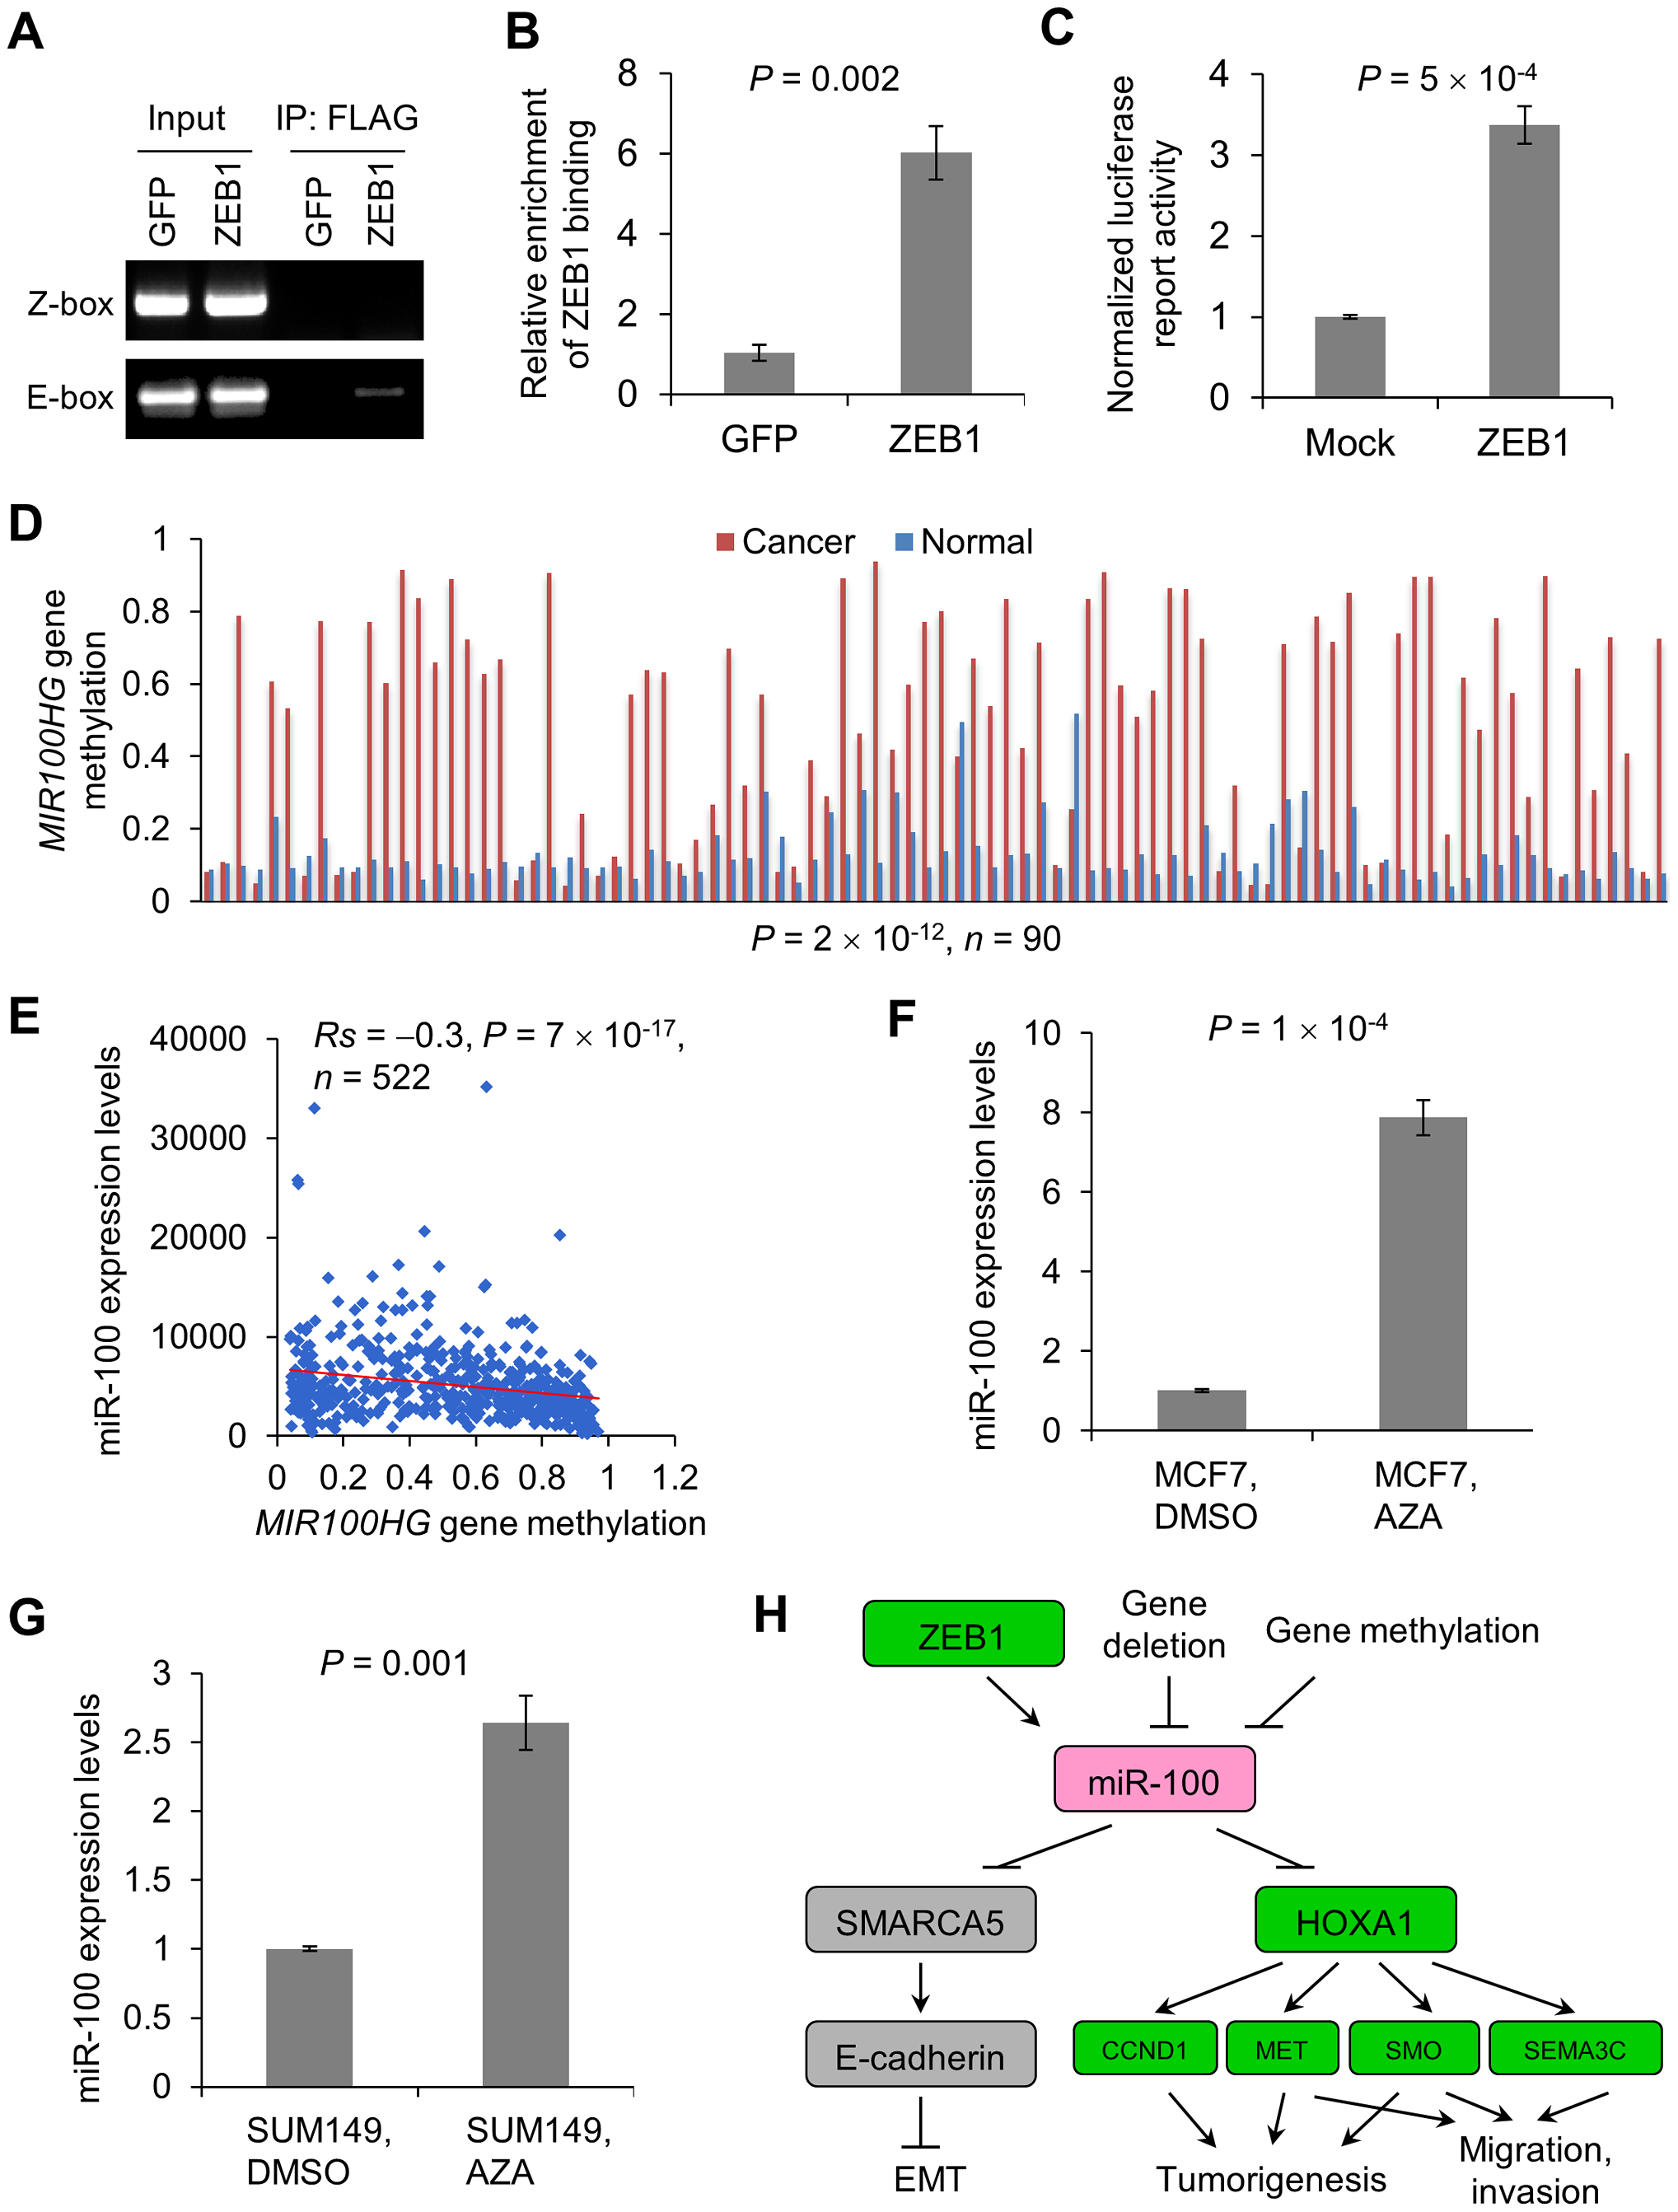 Regulation of miR-100 expression by ZEB1 and the methylation of the host gene <i>MIR100HG</i>.